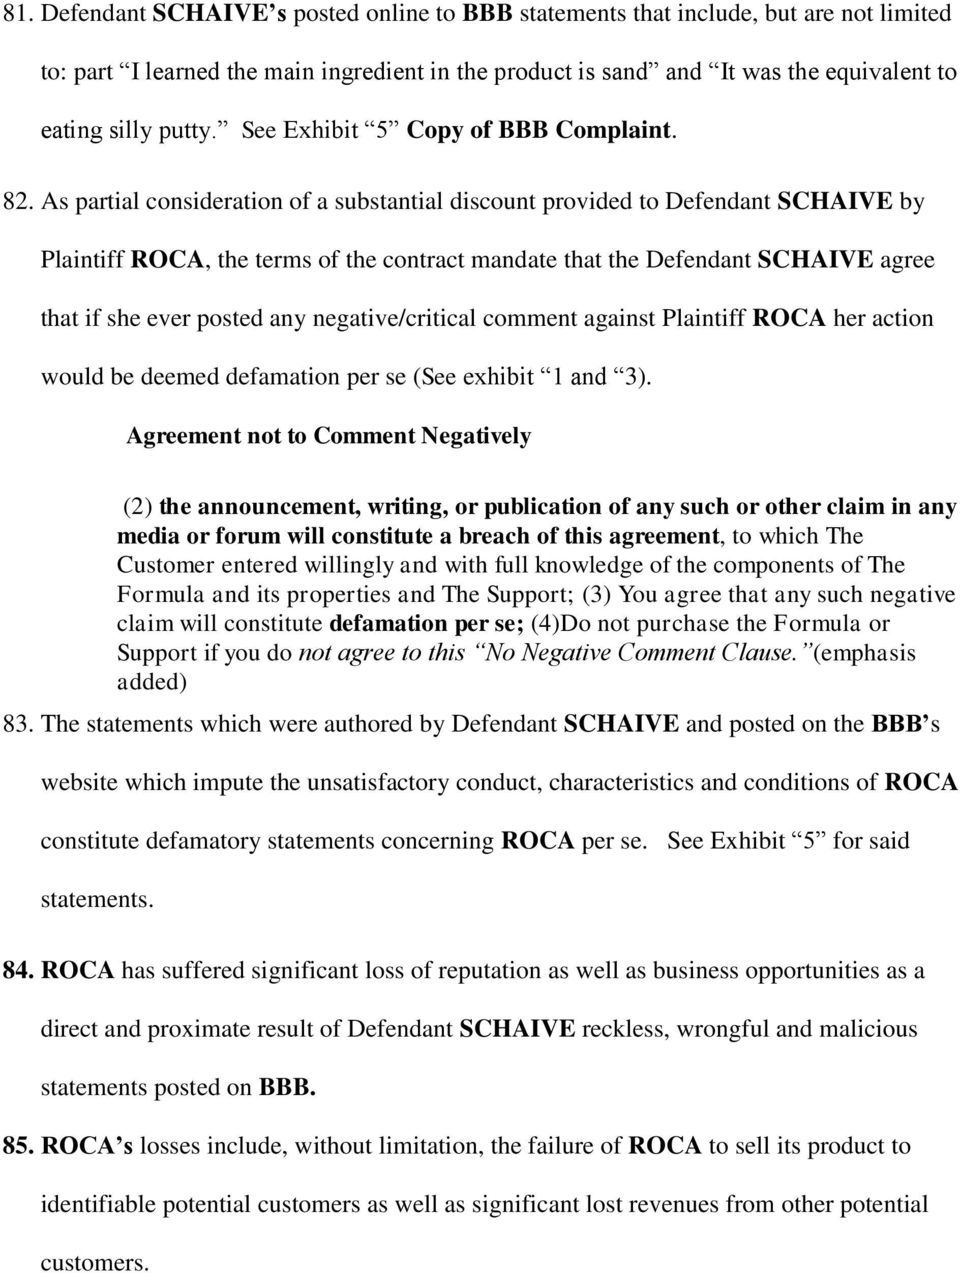 As partial consideration of a substantial discount provided to Defendant SCHAIVE by Plaintiff ROCA, the terms of the contract mandate that the Defendant SCHAIVE agree that if she ever posted any